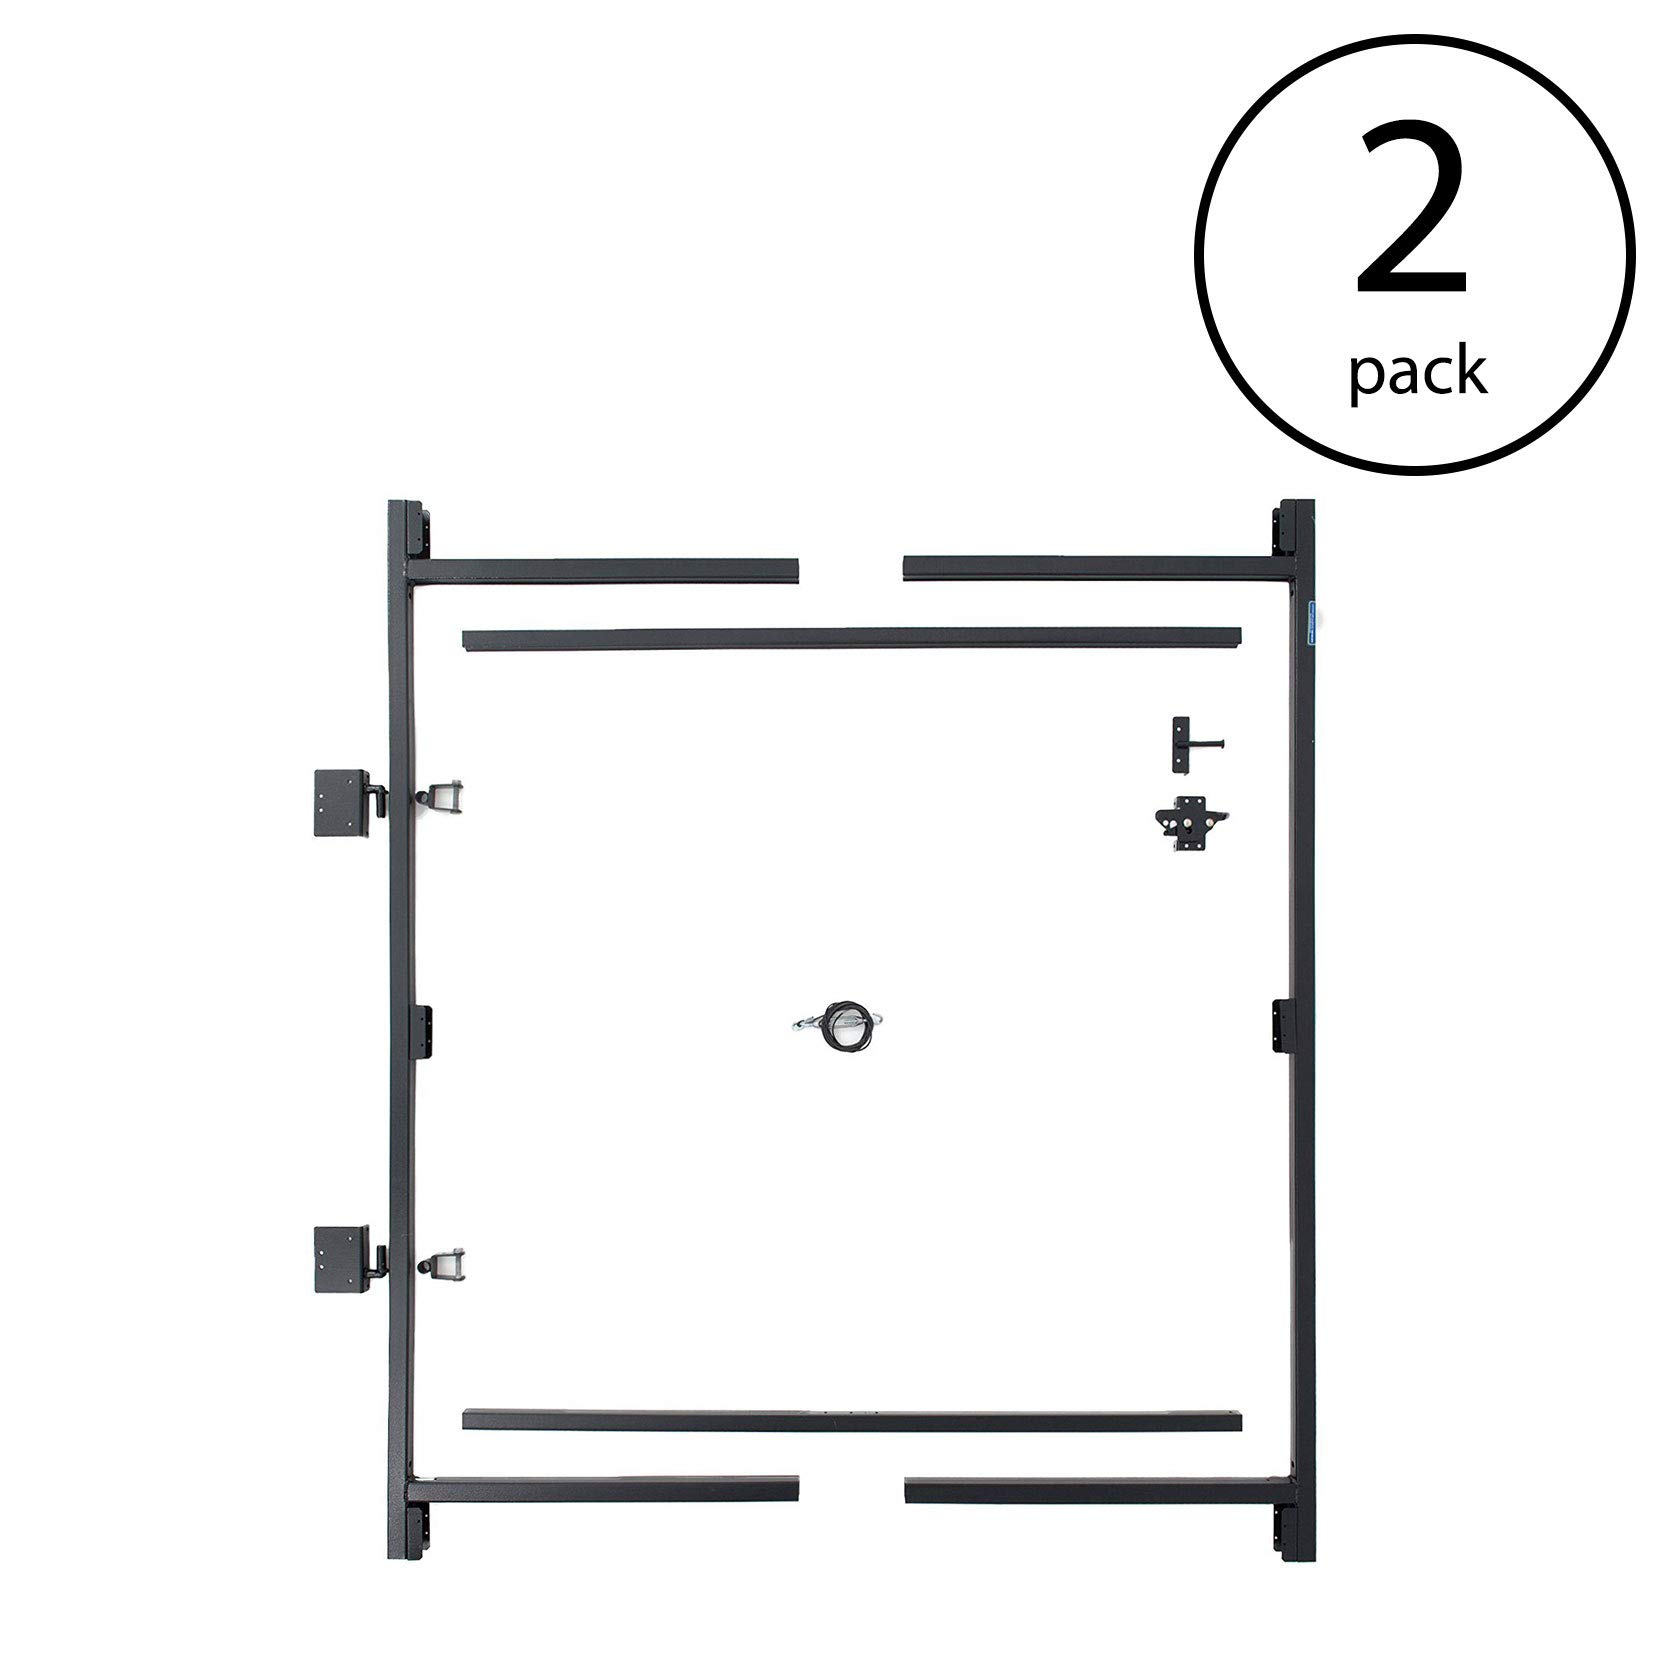 Adjust-A-Gate Steel Frame Gate Building Kit, 60''-96'' Wide, 6' High (2 Pack)